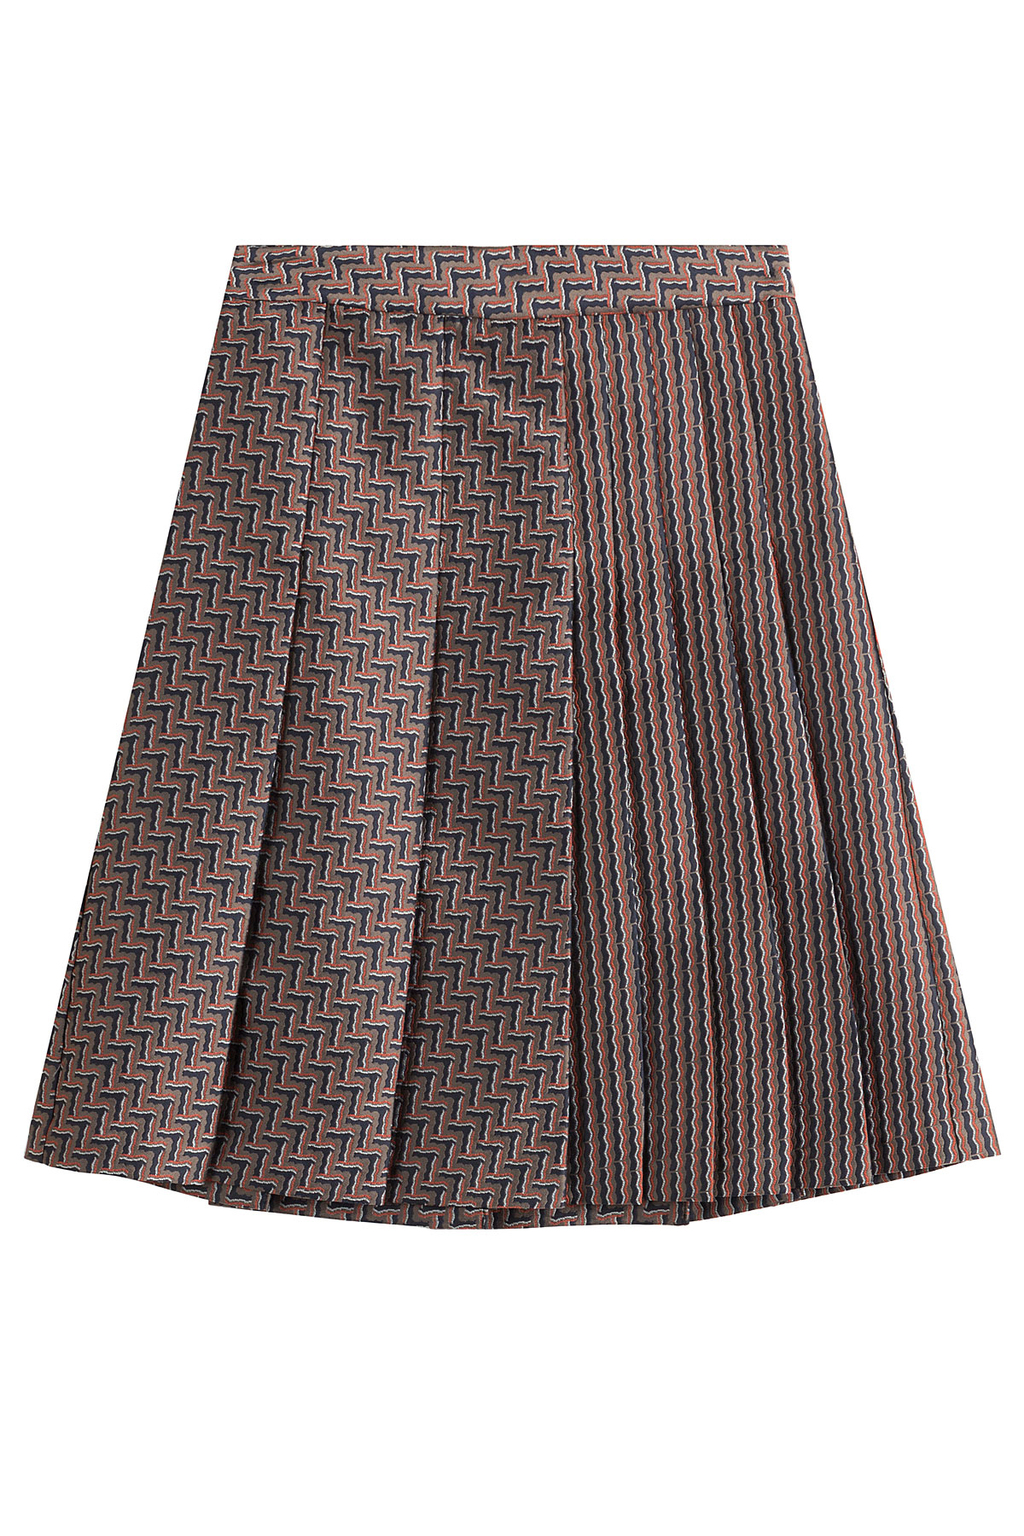 Woven Skirt With Pleats - fit: loose/voluminous; style: pleated; waist: mid/regular rise; predominant colour: taupe; occasions: casual; length: just above the knee; fibres: polyester/polyamide - 100%; pattern type: fabric; pattern: patterned/print; texture group: woven light midweight; season: s/s 2016; wardrobe: highlight